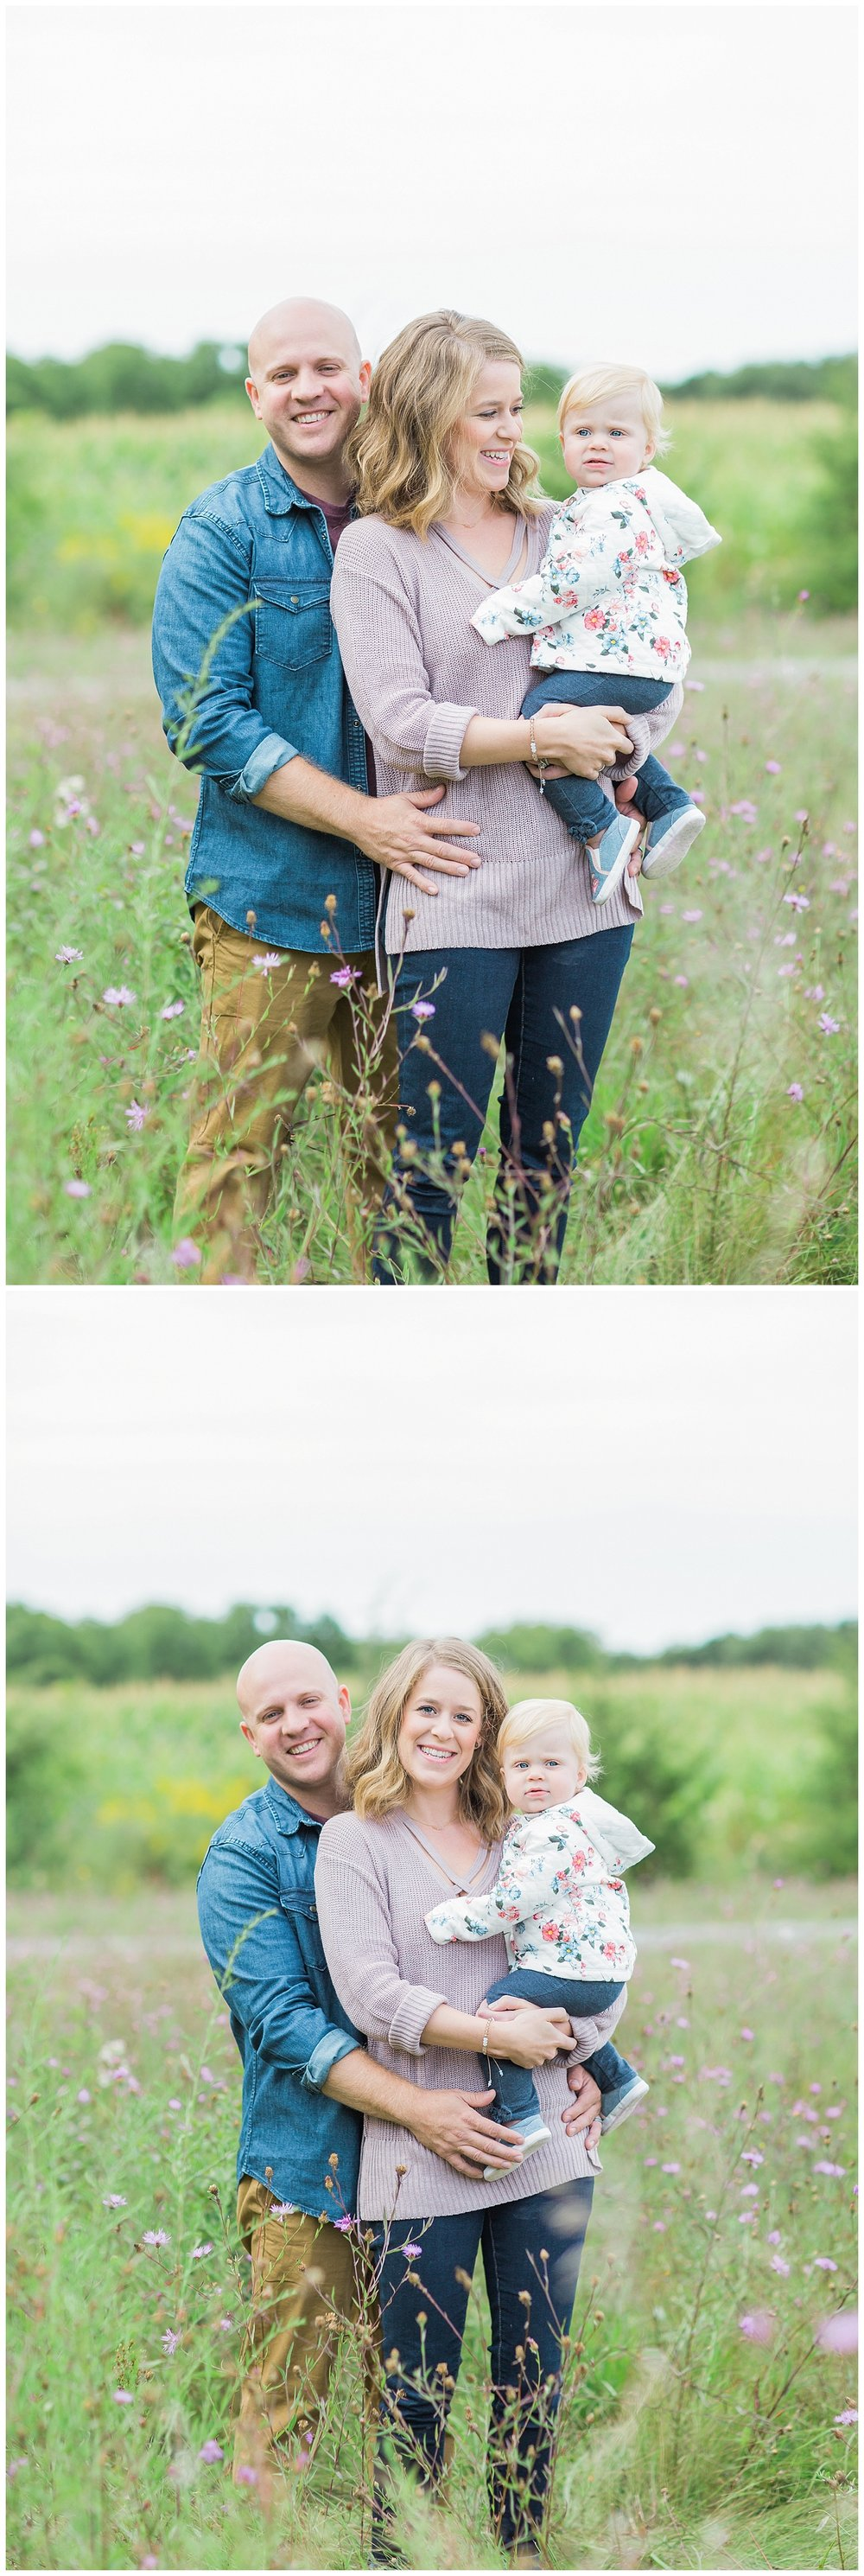 The Holt Family - Indian Fort - WHIMSY ROOTS -10_Buffalo wedding photography.jpg